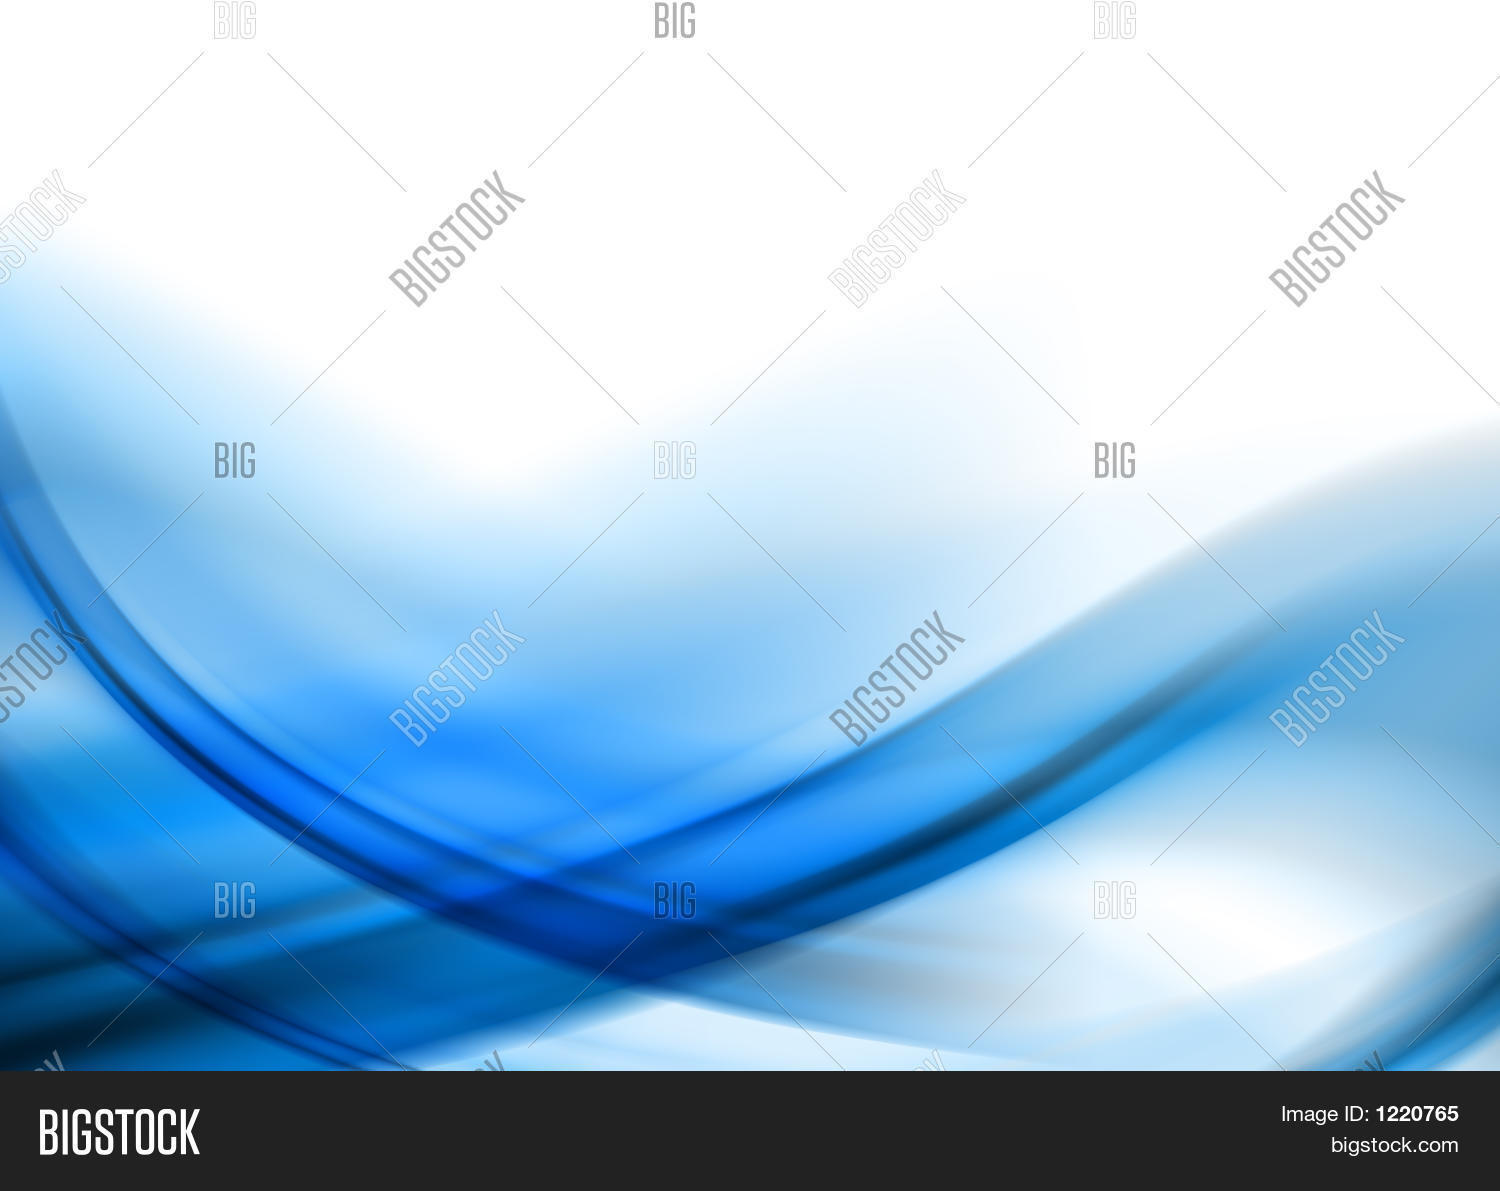 abstract,abstract background,abstract backgrounds,abstract blue background,abstraction,abstract light,artistic,backdrop,background,background abstract,backgrounds abstract,blend,blue,blue abstract background,blue background,blue background abstract,blue backgrounds,blue background texture,borders,colorful abstract background,colors,compositions,cyber,desktop,digital,dynamic,effects,electric,elements,flow,forms,futuristic,graphic,illustration,layers,light,light blue background,lines,motion,patterns,presentation,print,publicity,shapes,shiny,space,techno,templates,texture,themes,wallpaper,water,waves,web